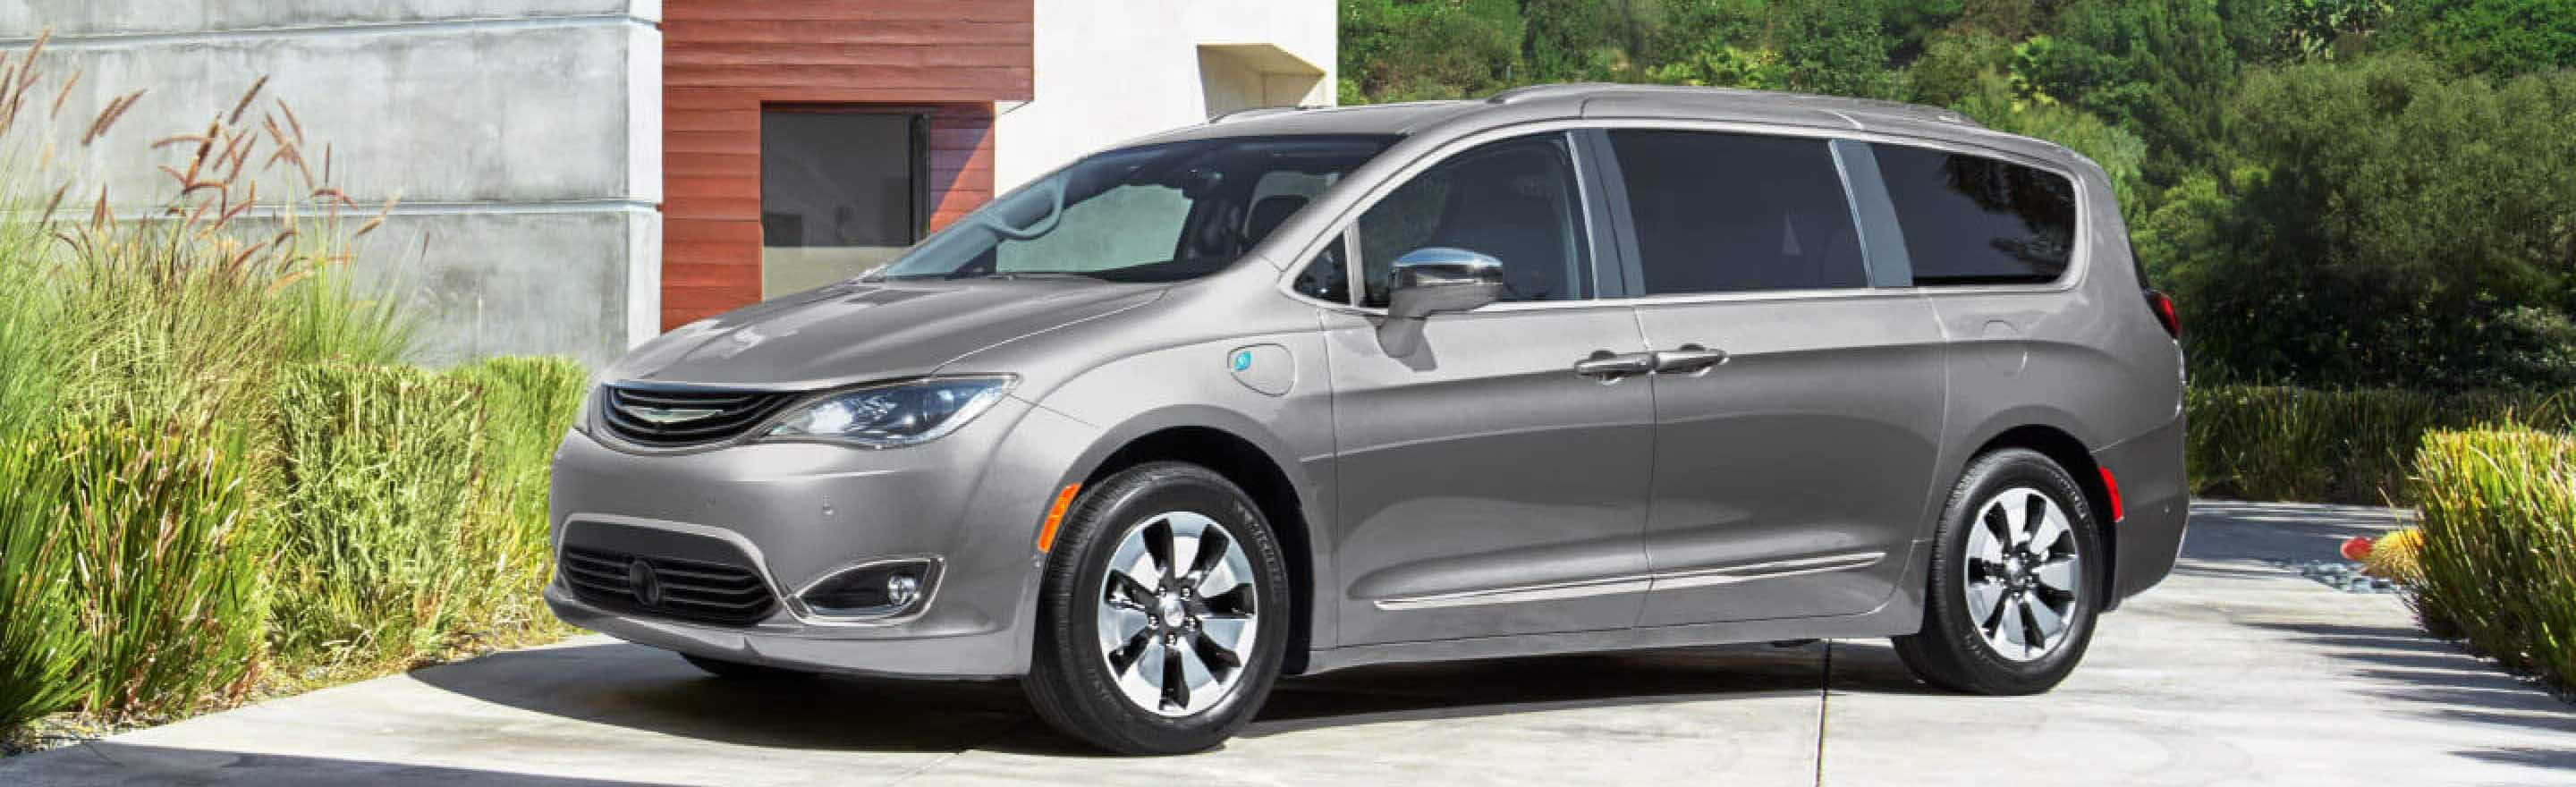 2019 Chrysler Pacifica Hybrid by Stockton, CA